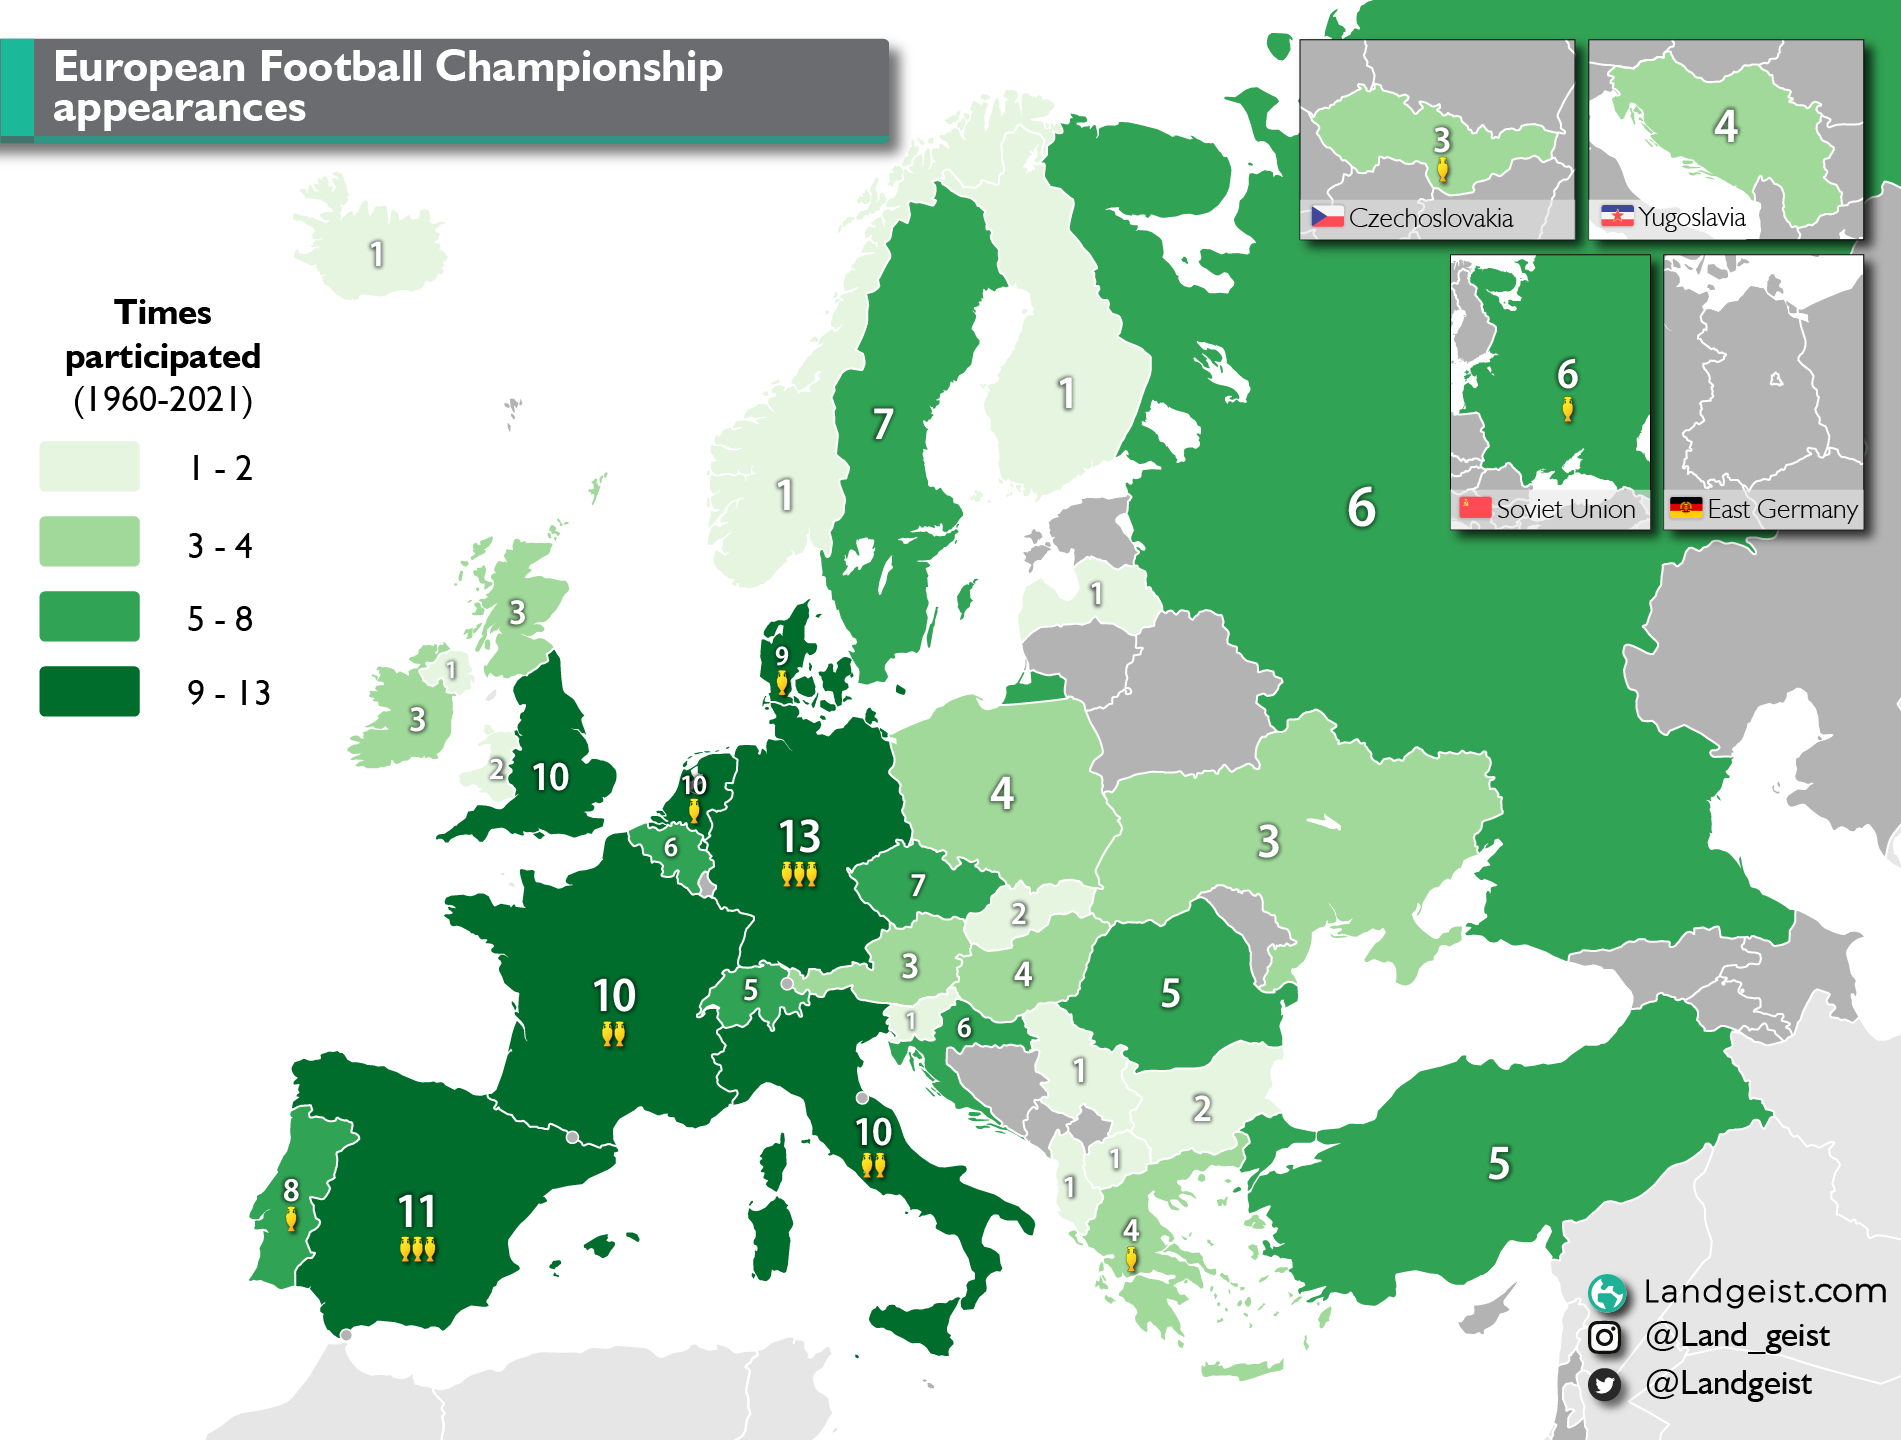 Map showing the number of appearances of each European country during the European Football Championship.